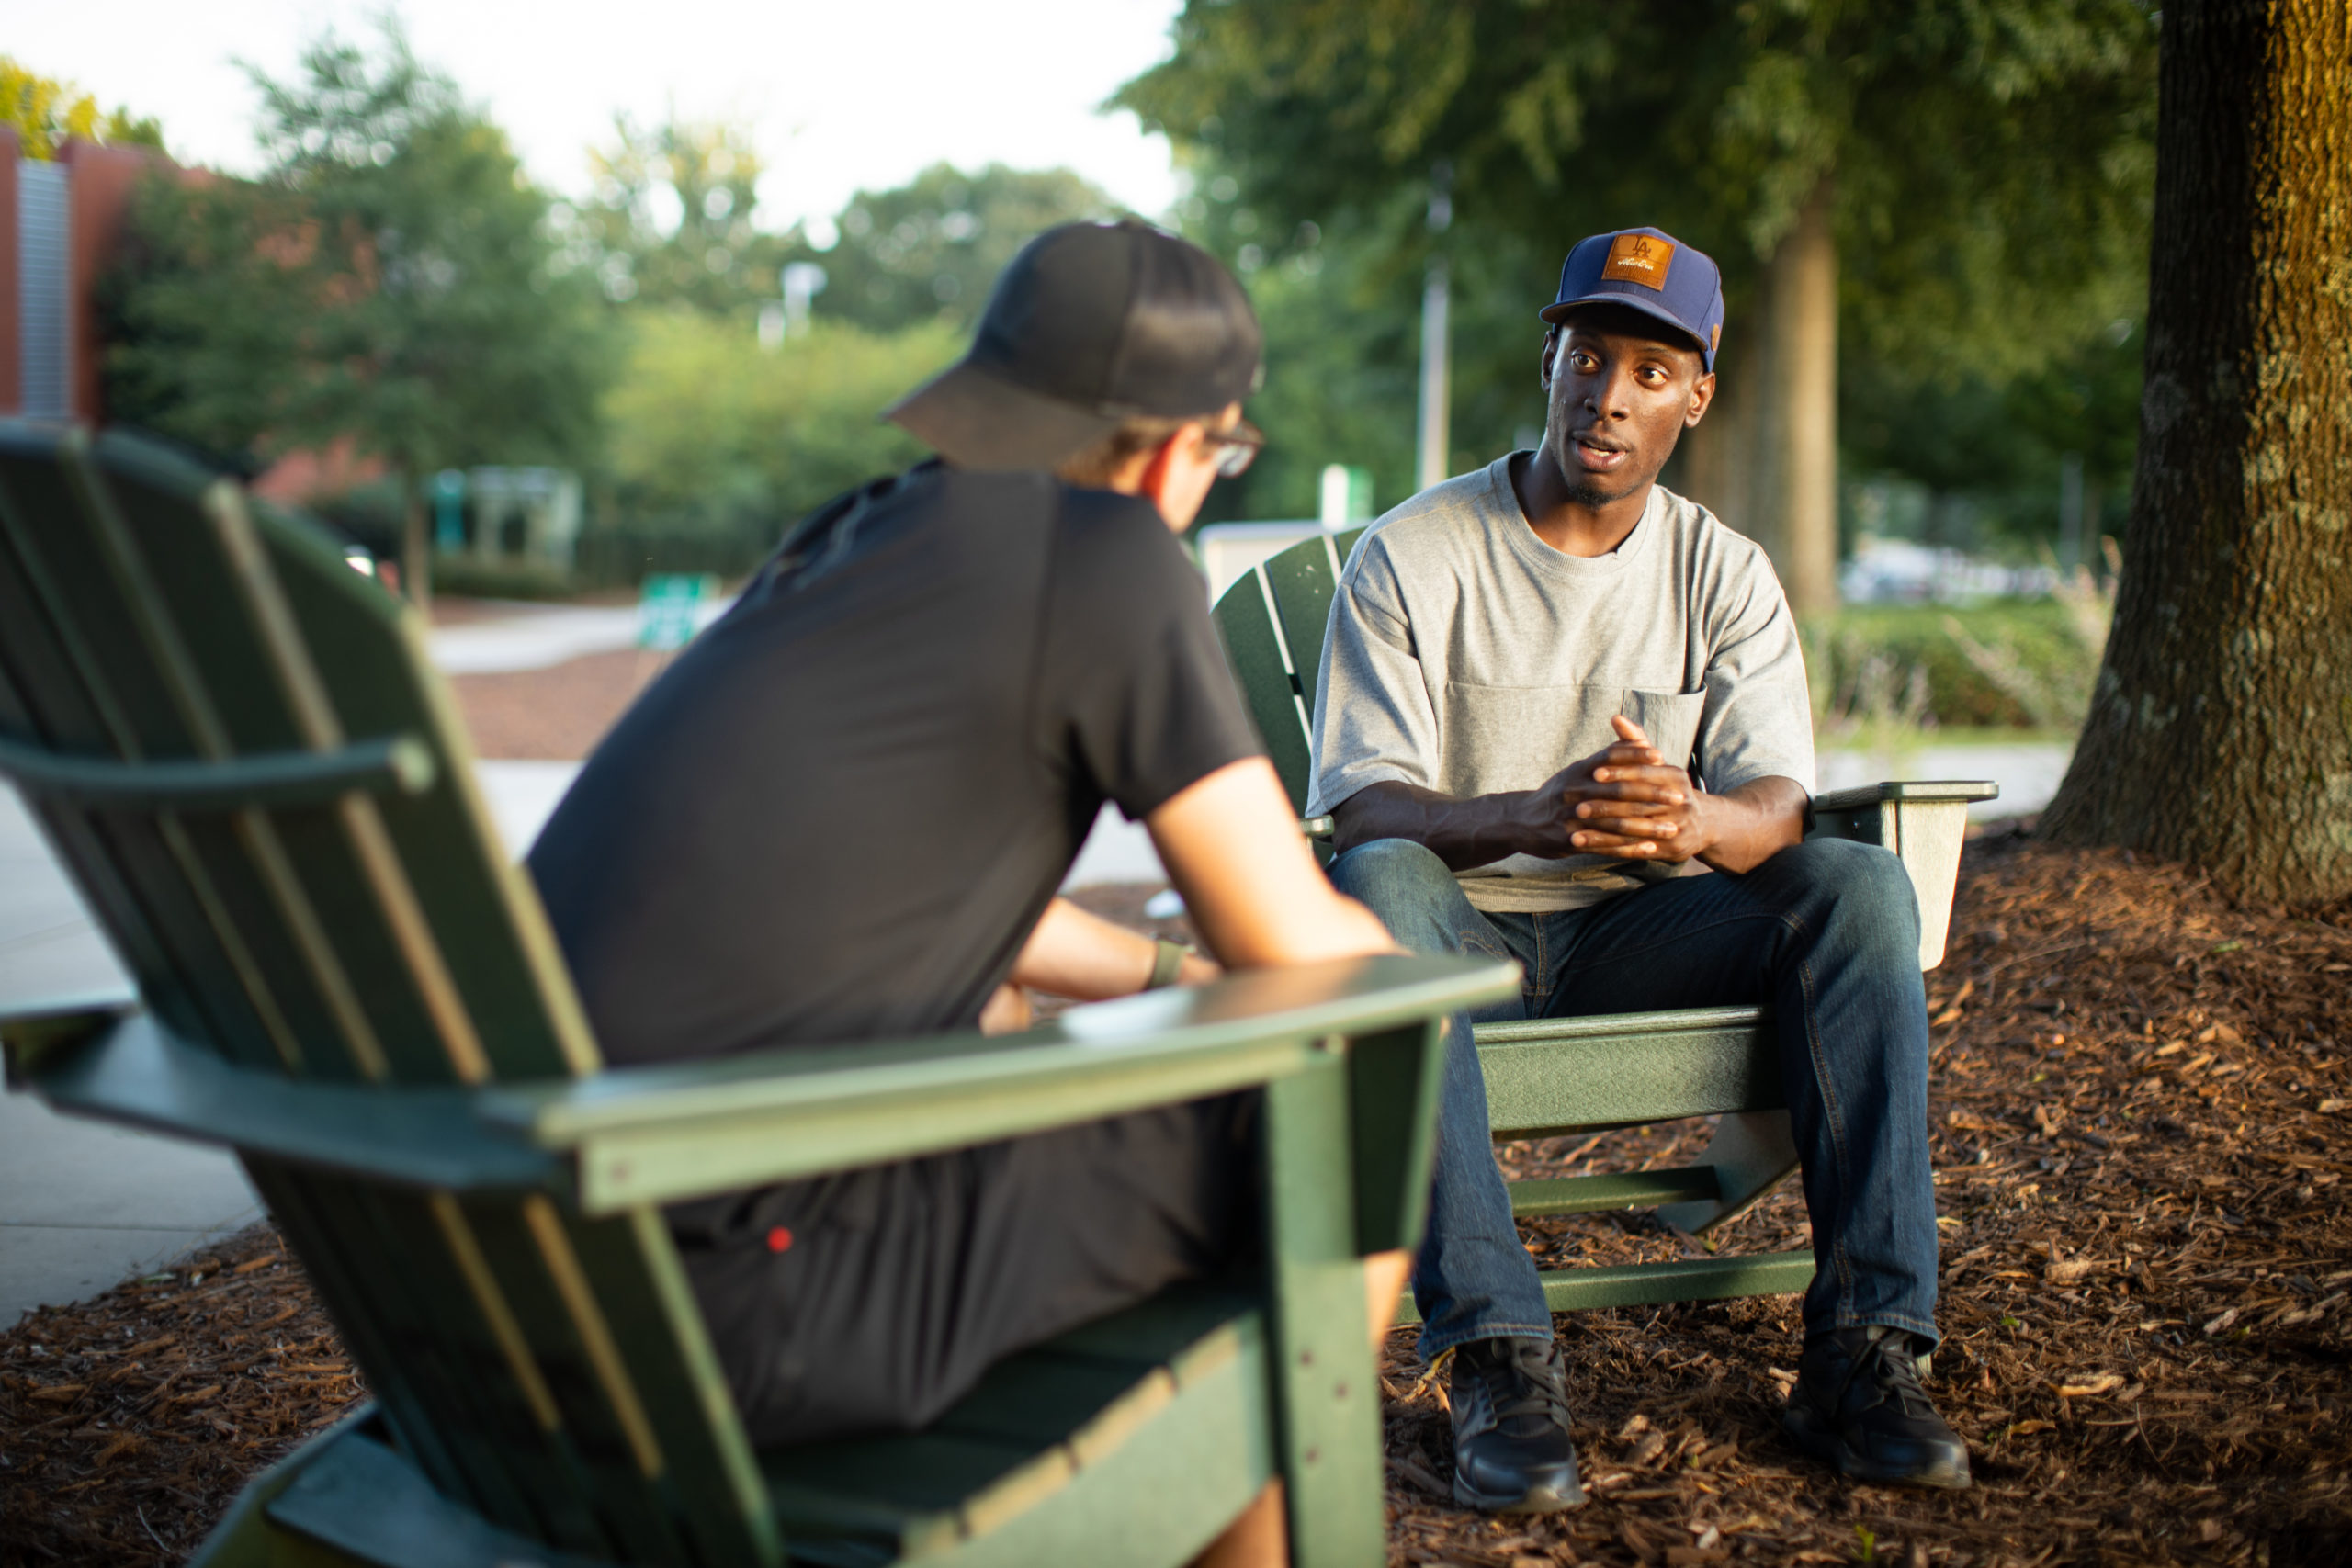 Chike Uzuegbunam (right) speaks to another student on the campus of Georgia Gwinnett College in Lawrenceville, Georgia. (Alliance Defending Freedom)